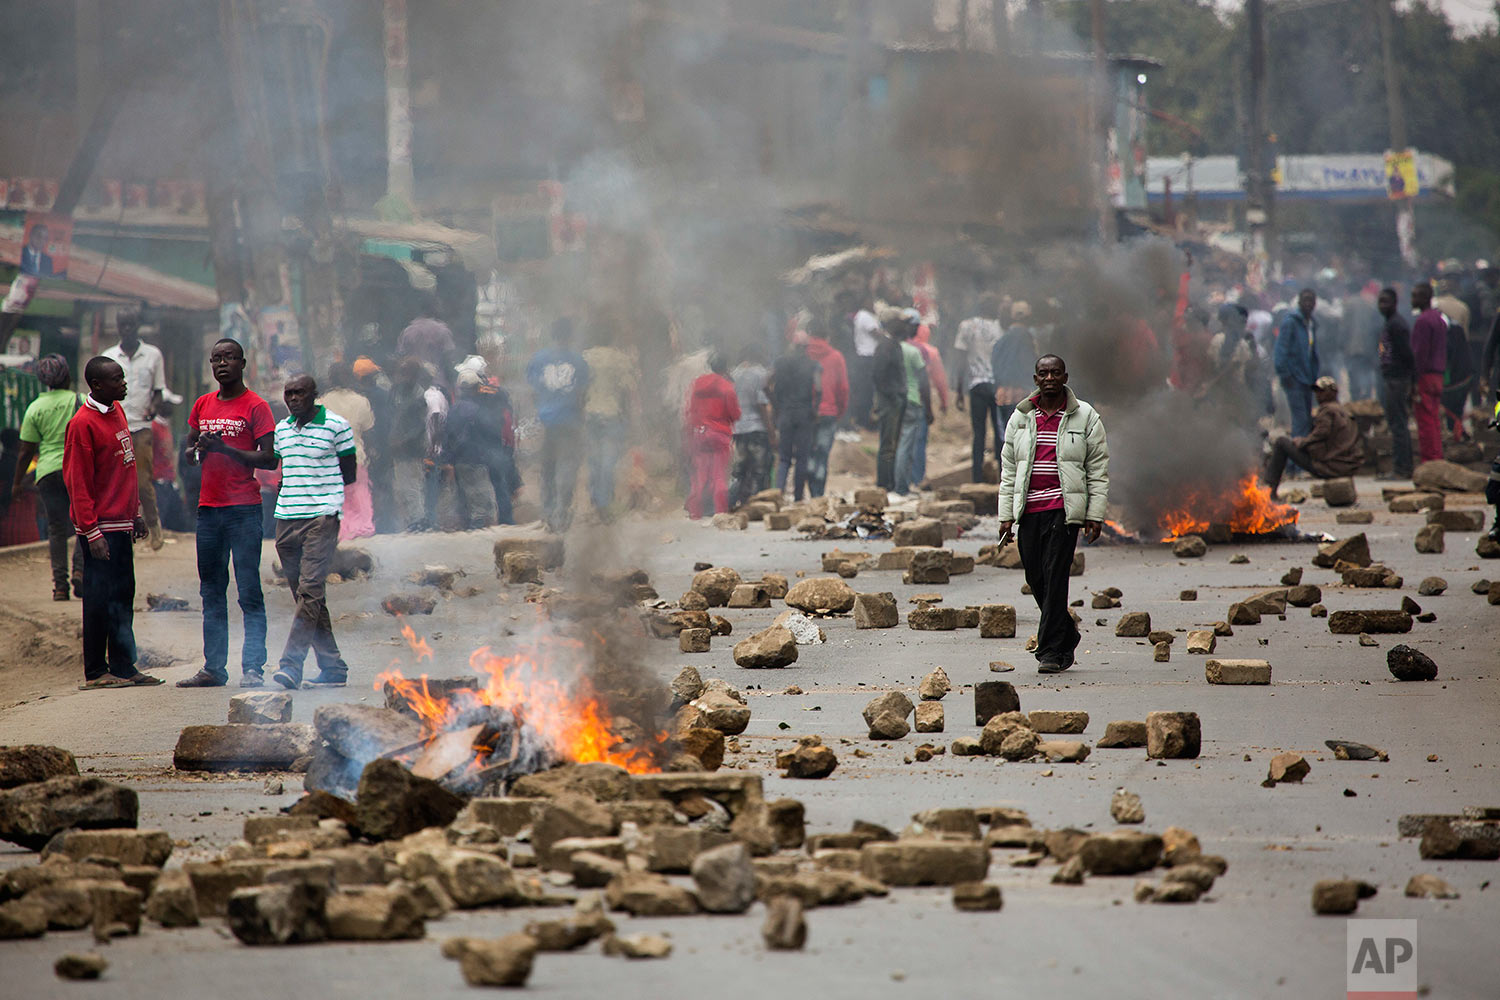 Supporters of Kenyan opposition leader and presidential candidate Raila Odinga demonstrate in the Mathare area of Nairobi Wednesday, Aug. 9, 2017. Kenya's election took an ominous turn on Wednesday as violent protests erupted in the capital and elsewhere after opposition leader Raila Odinga alleged fraud, saying hackers used the identity of a murdered official to infiltrate the database of the country's election commission and manipulate results. (AP Photo/Jerome Delay)